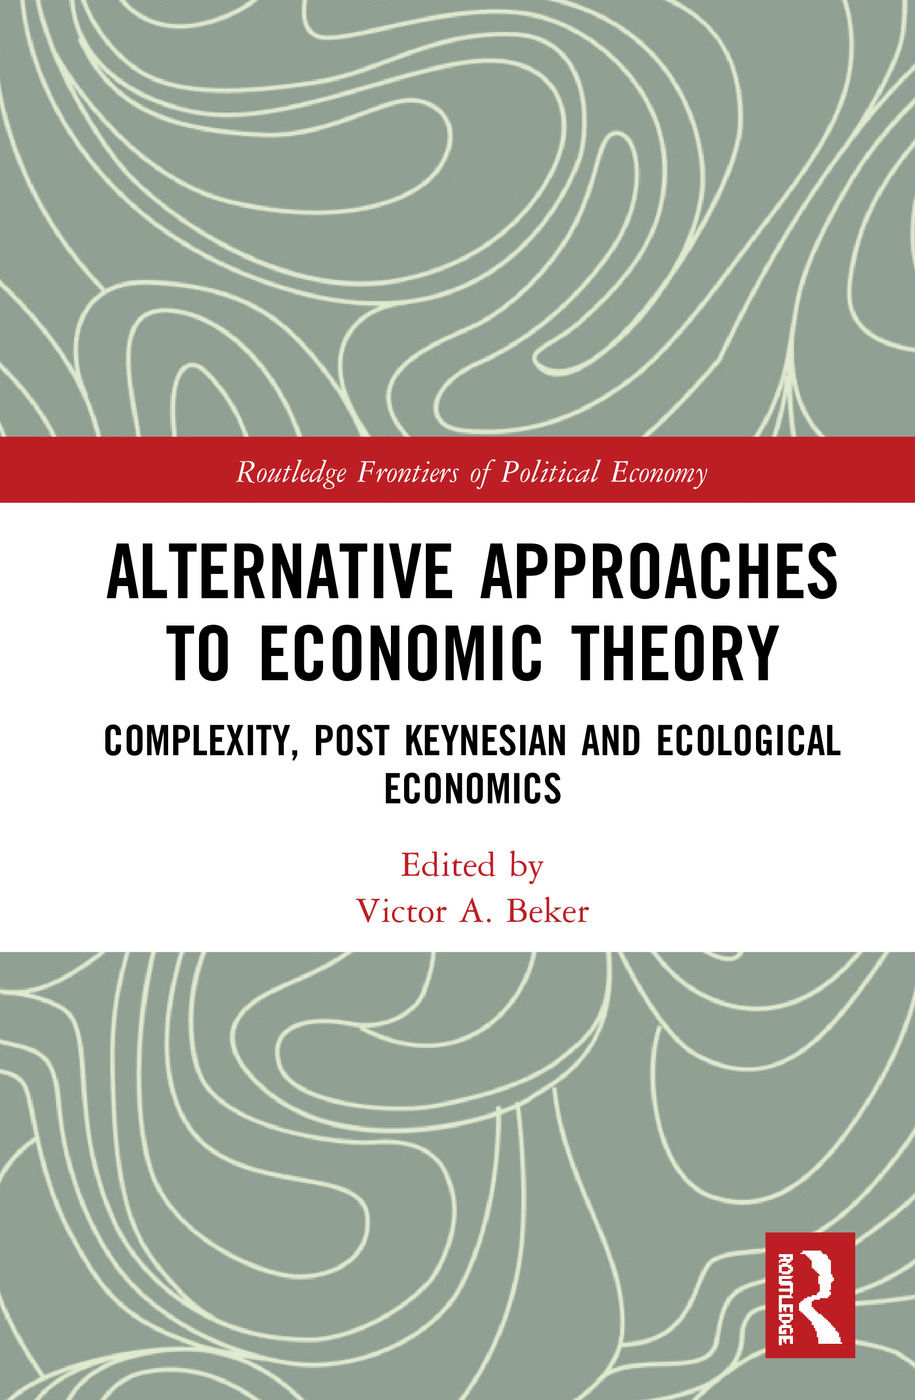 Alternative Approaches to Economic Theory: Complexity, Post Keynesian and Ecological Economics book cover